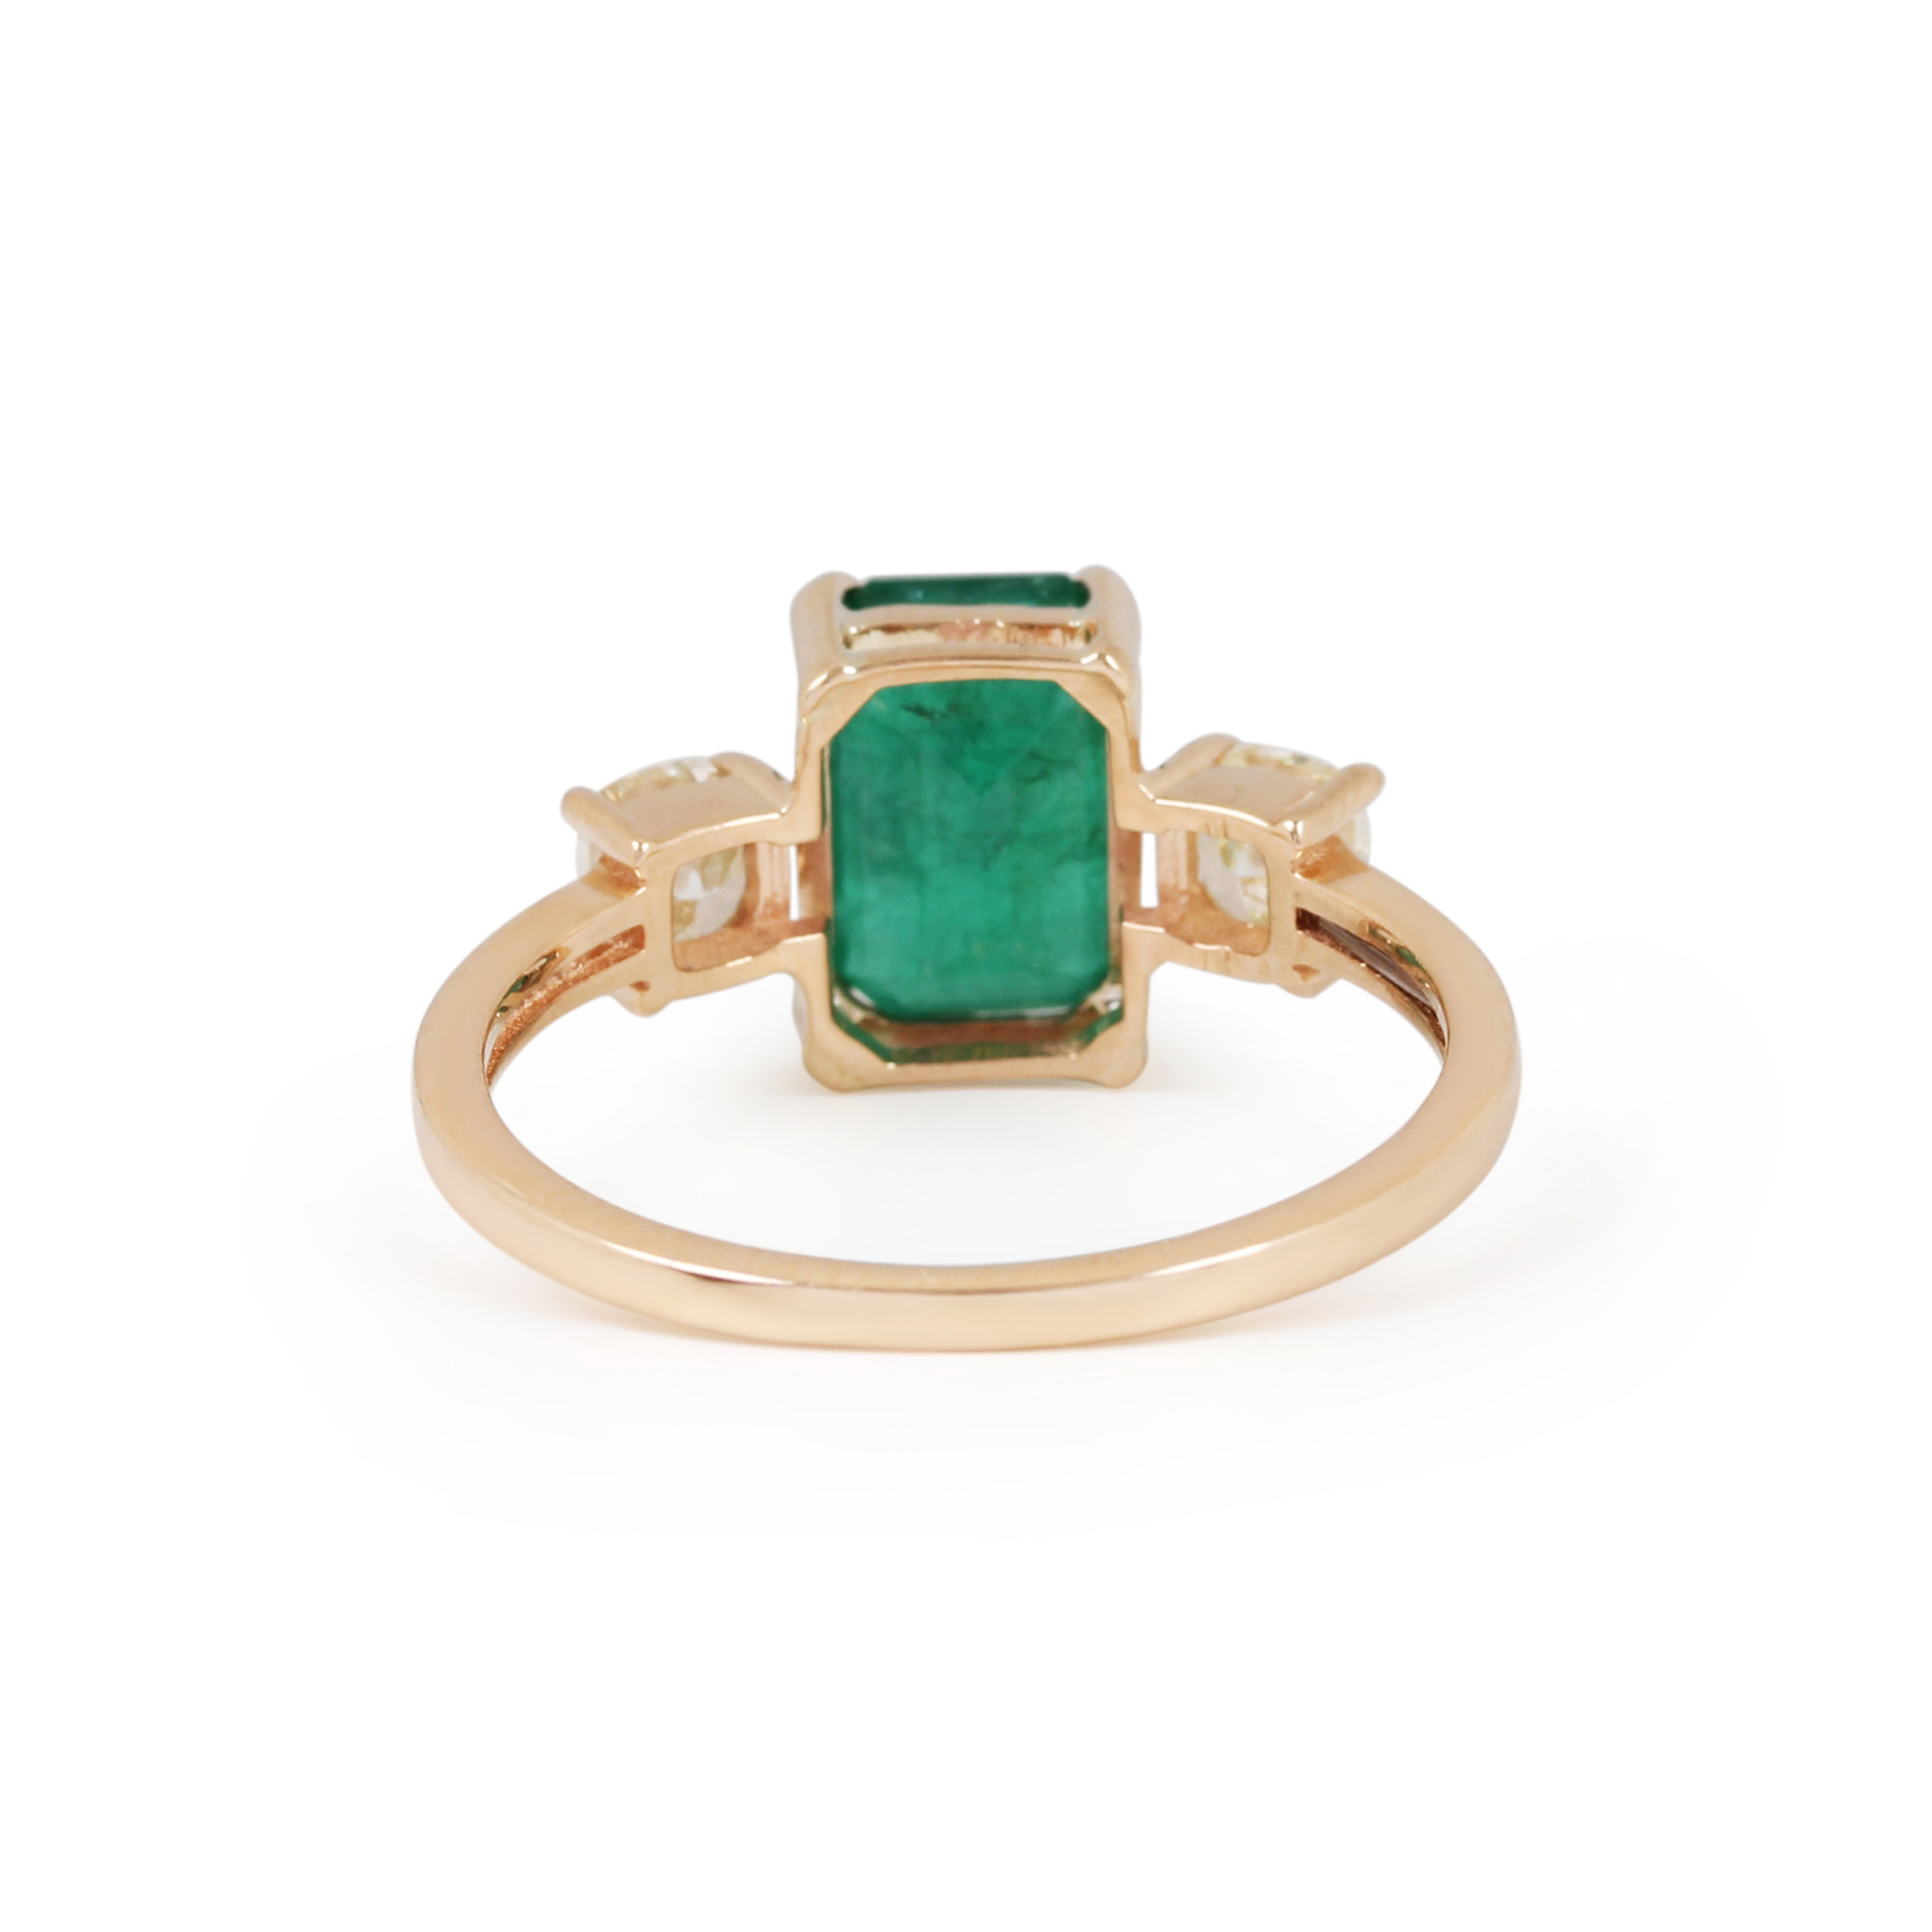 Natural Emerald Diamond 14K Solid Gold Ring Jewelry